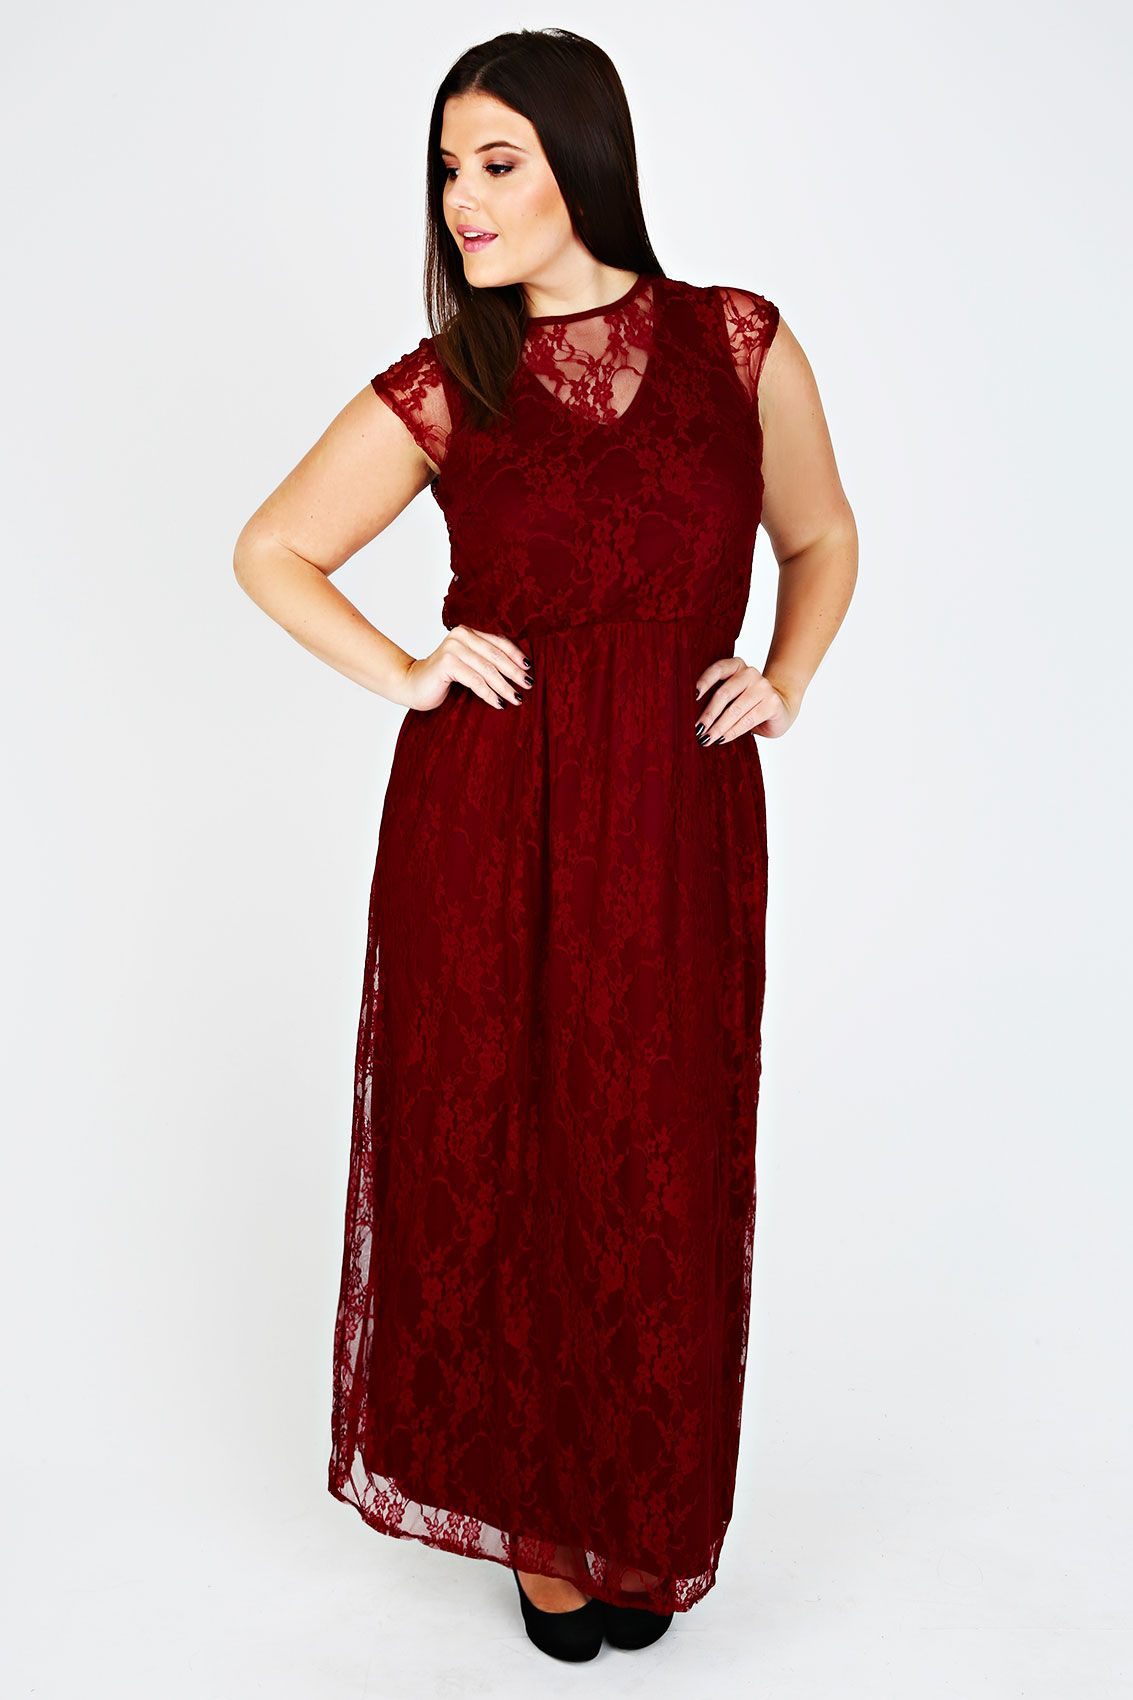 Christmas Ball Gowns Plus Size.Wine Maxi Dress With Lace Overlay 29 B Day Plus Size